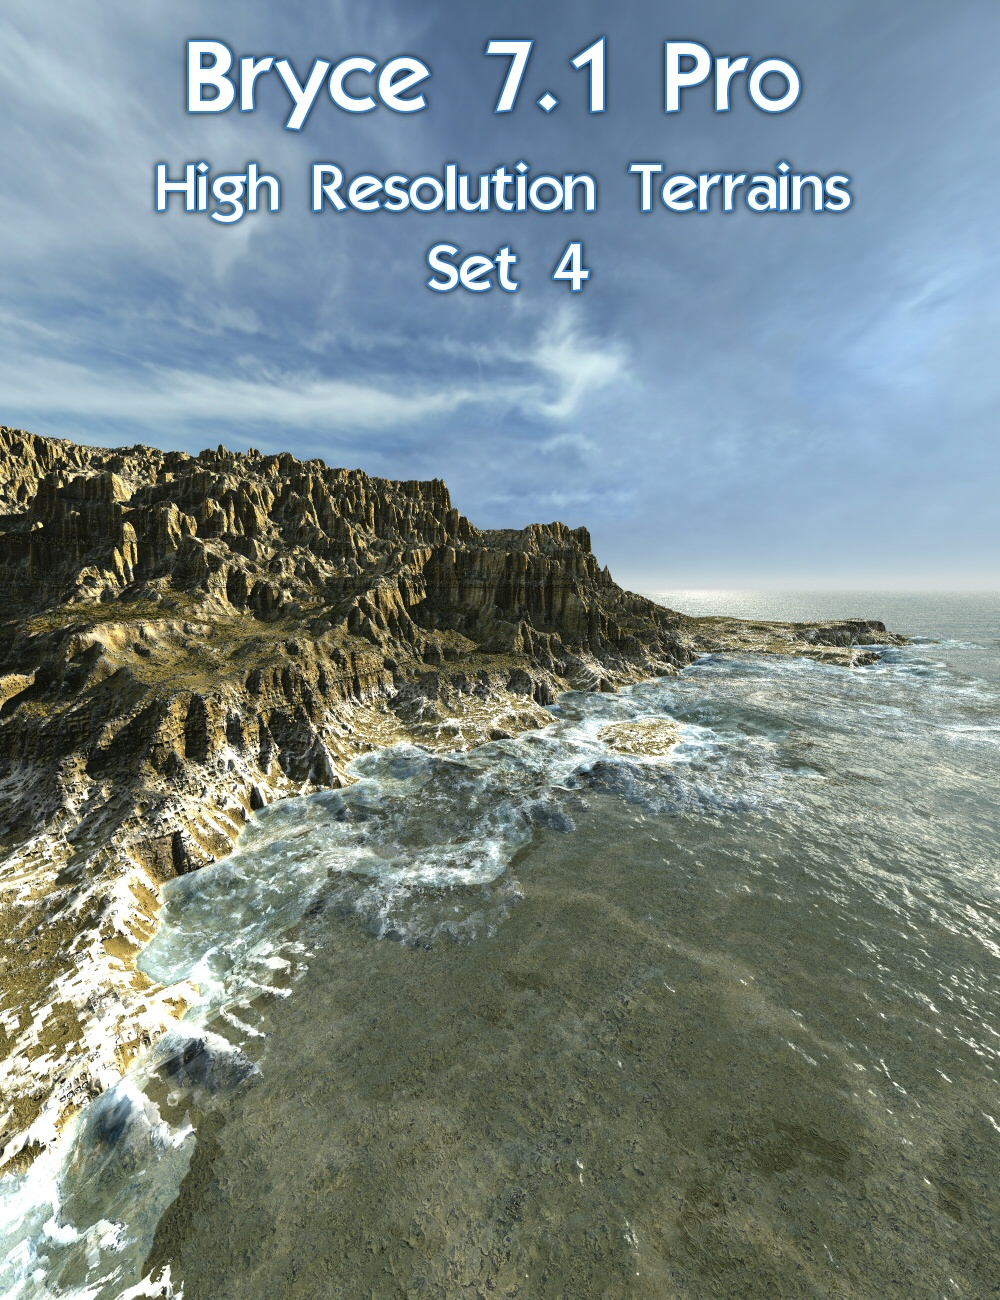 Bryce 7.1 Pro - High Resolution Terrains - Set 4 by: David BrinnenHoro, 3D Models by Daz 3D